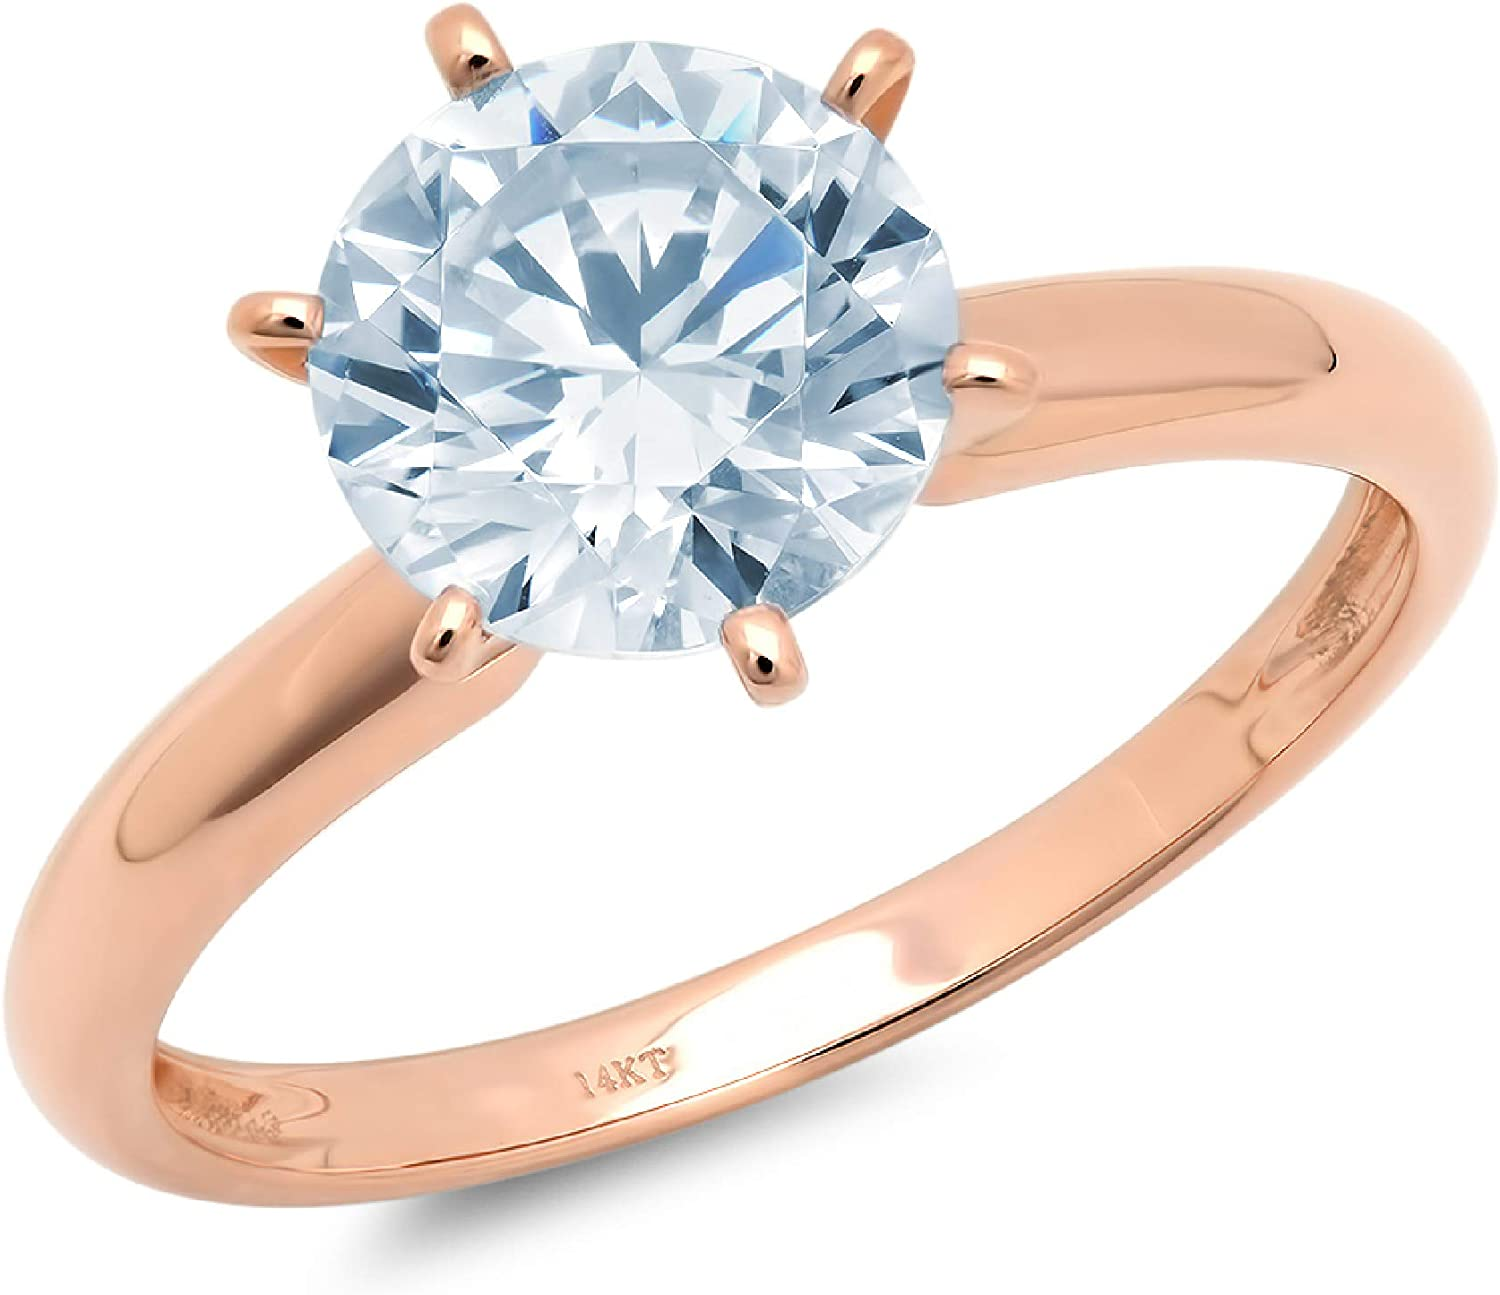 1.45ct Brilliant Round Cut Solitaire Aquamarine Blue Simulated Diamond CZ Ideal VVS1 D 6-Prong Classic Designer Statement Ring in Solid Real 14k rose Gold for Women